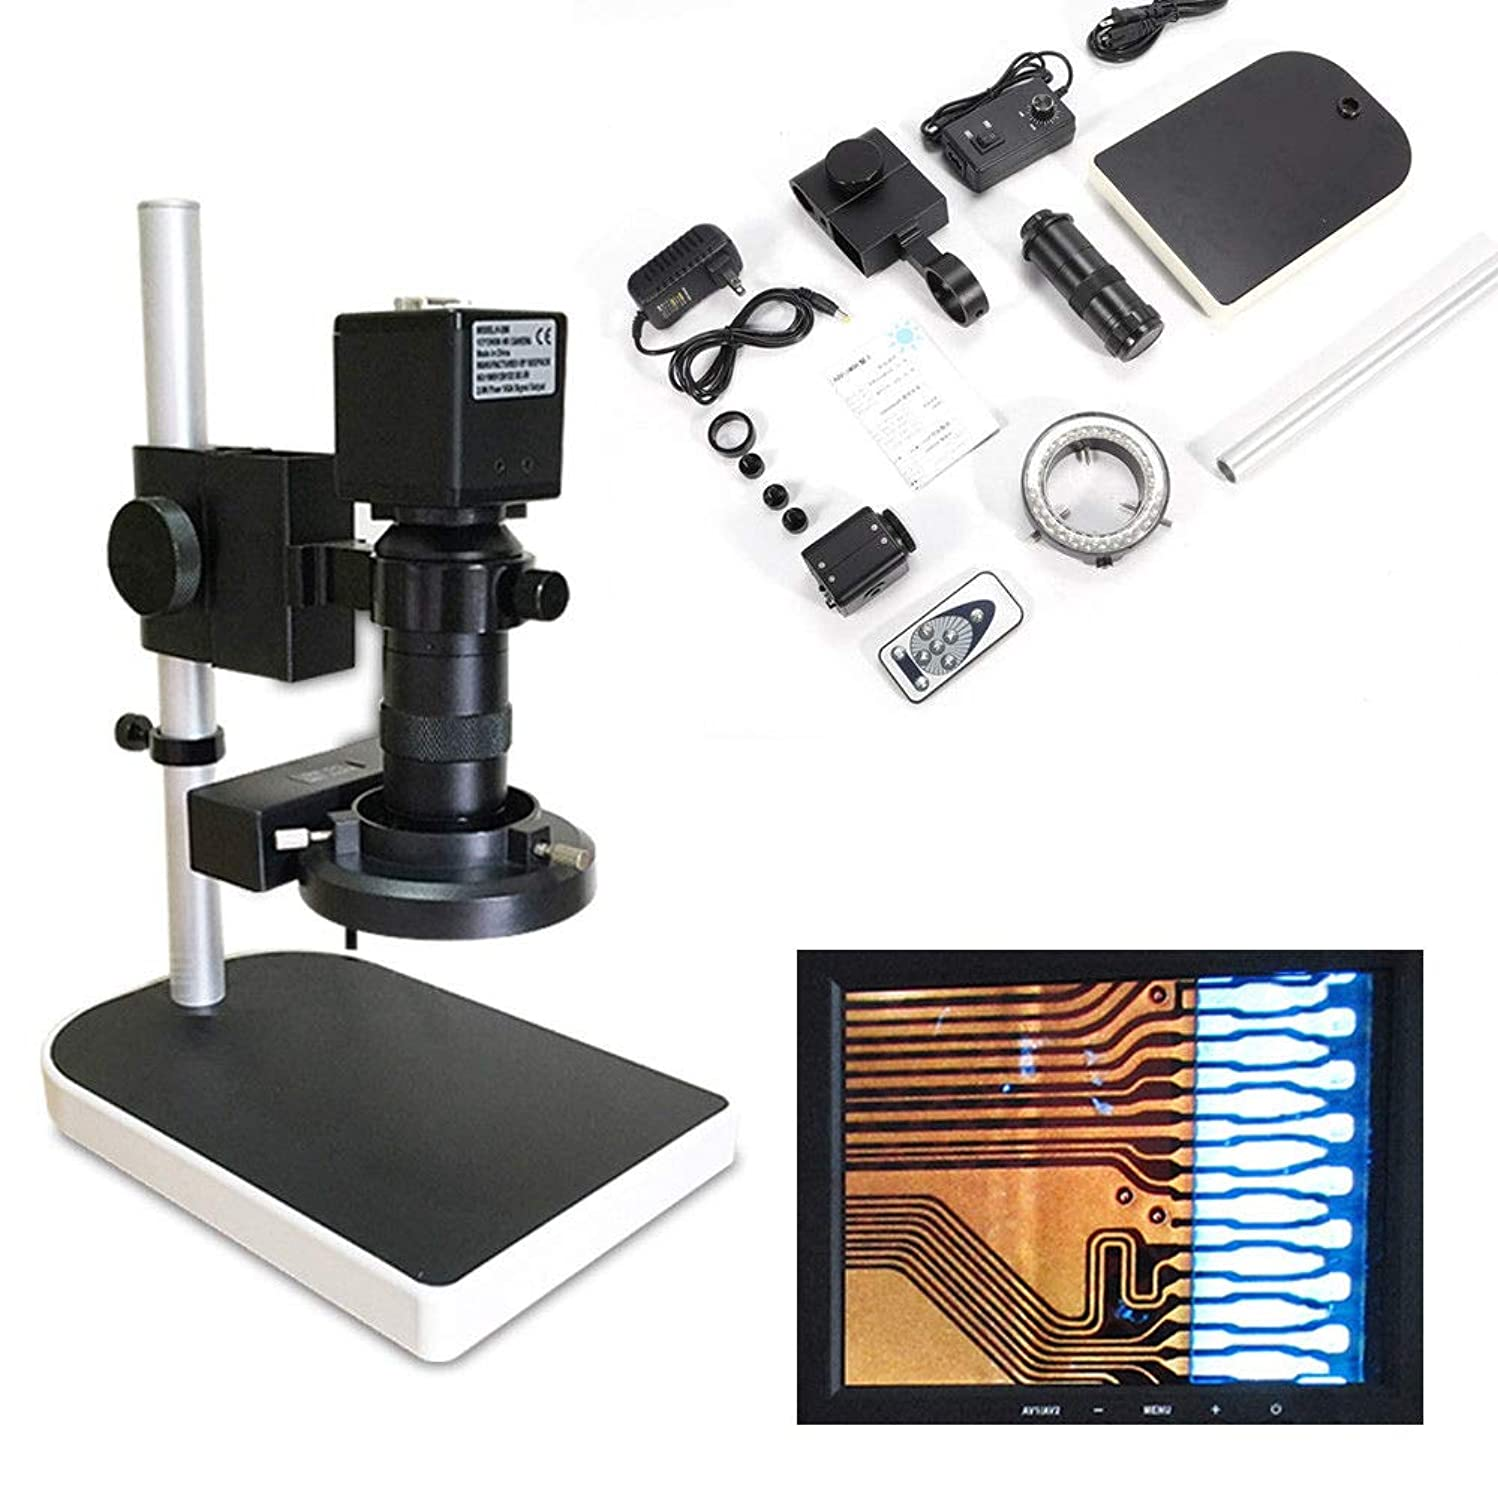 HDMI FHD Digital Industry Camera Video Zoom Microscope Lens Lift Stand 16MP 1080P 10x-180x